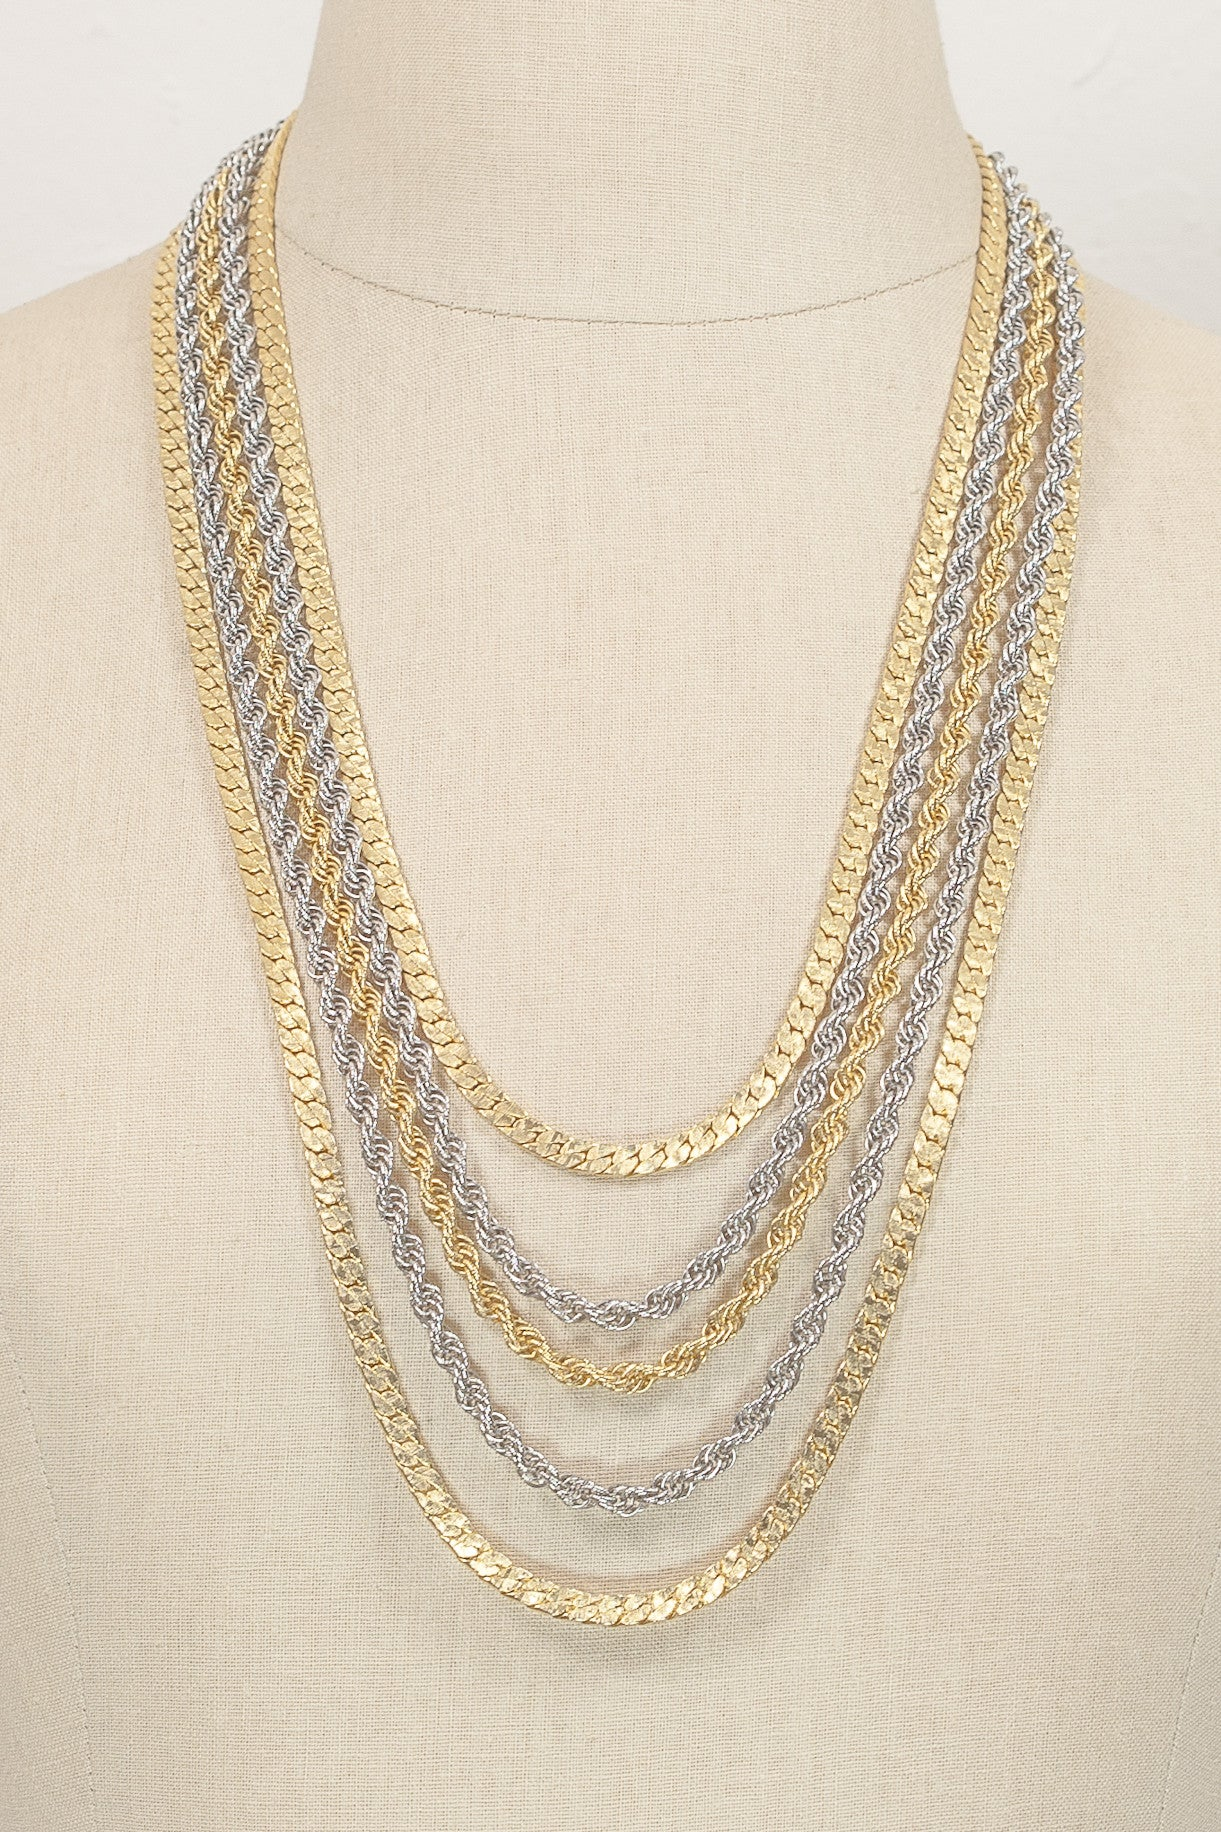 60's__Goldette__Multi Chain Mixed Metal Necklace